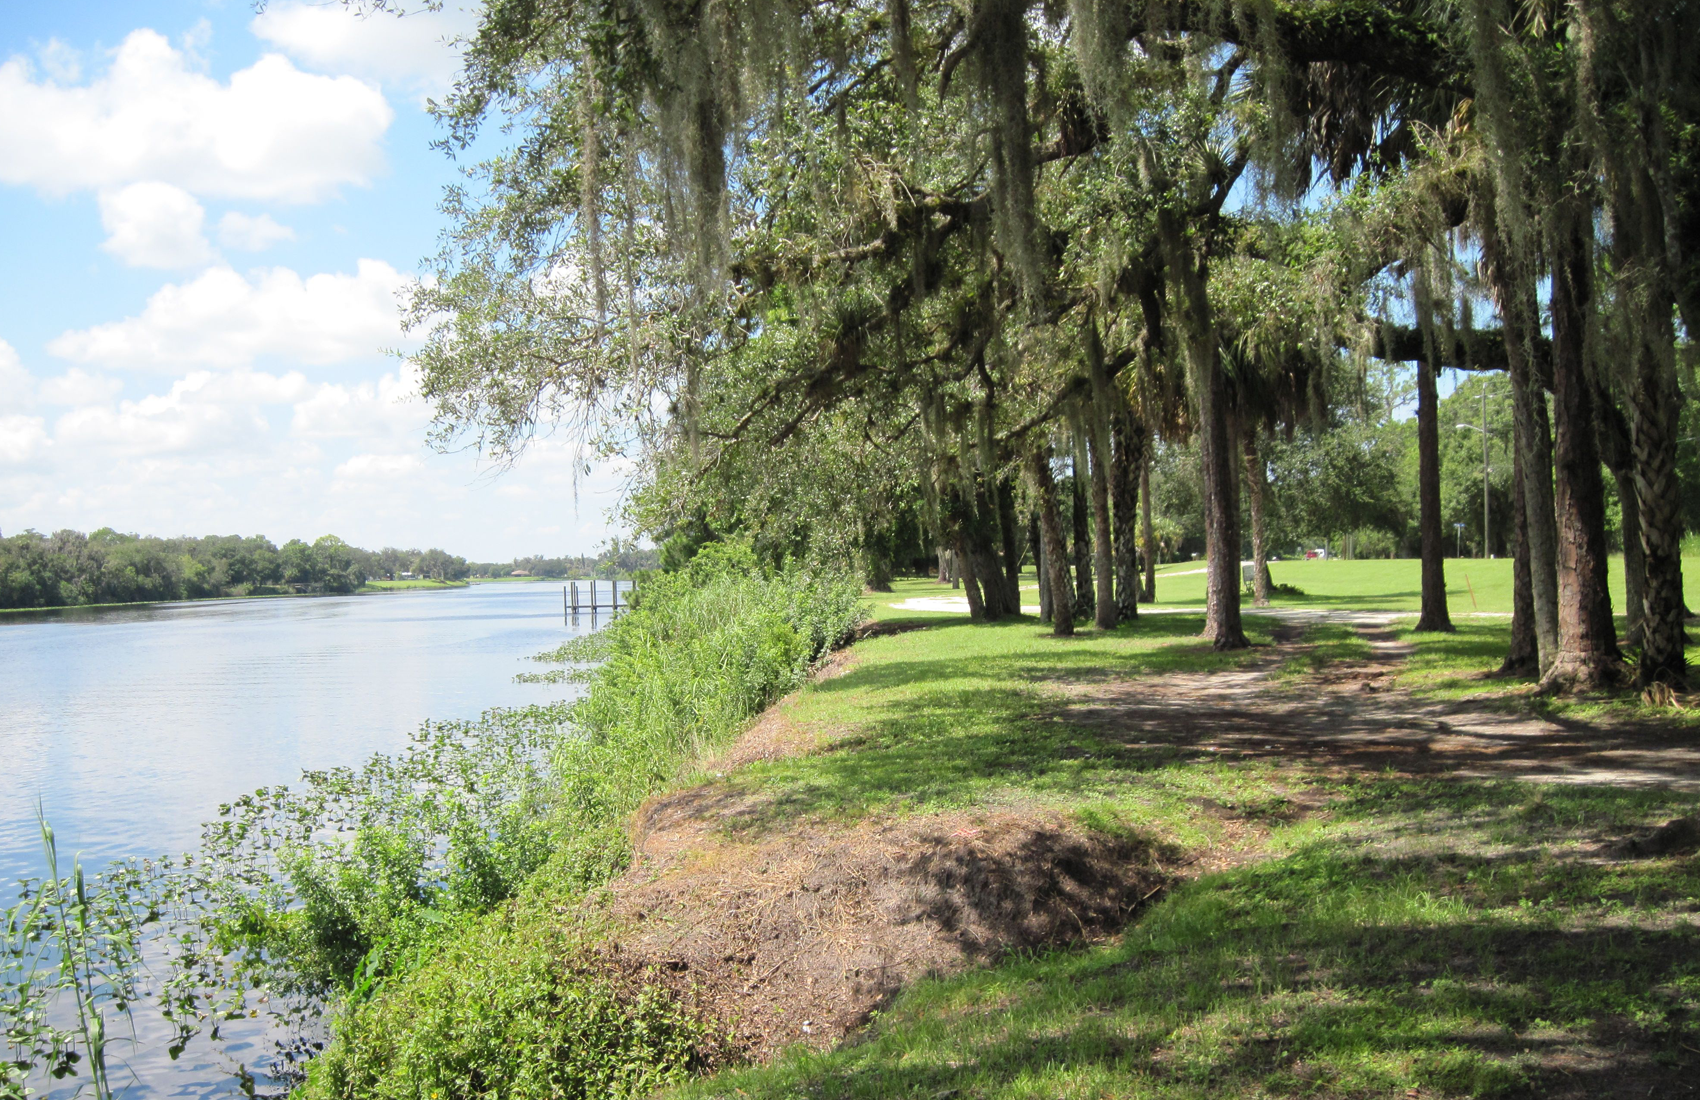 slideshow of the Caloosahatchee Riverbank in LaBelle, FL